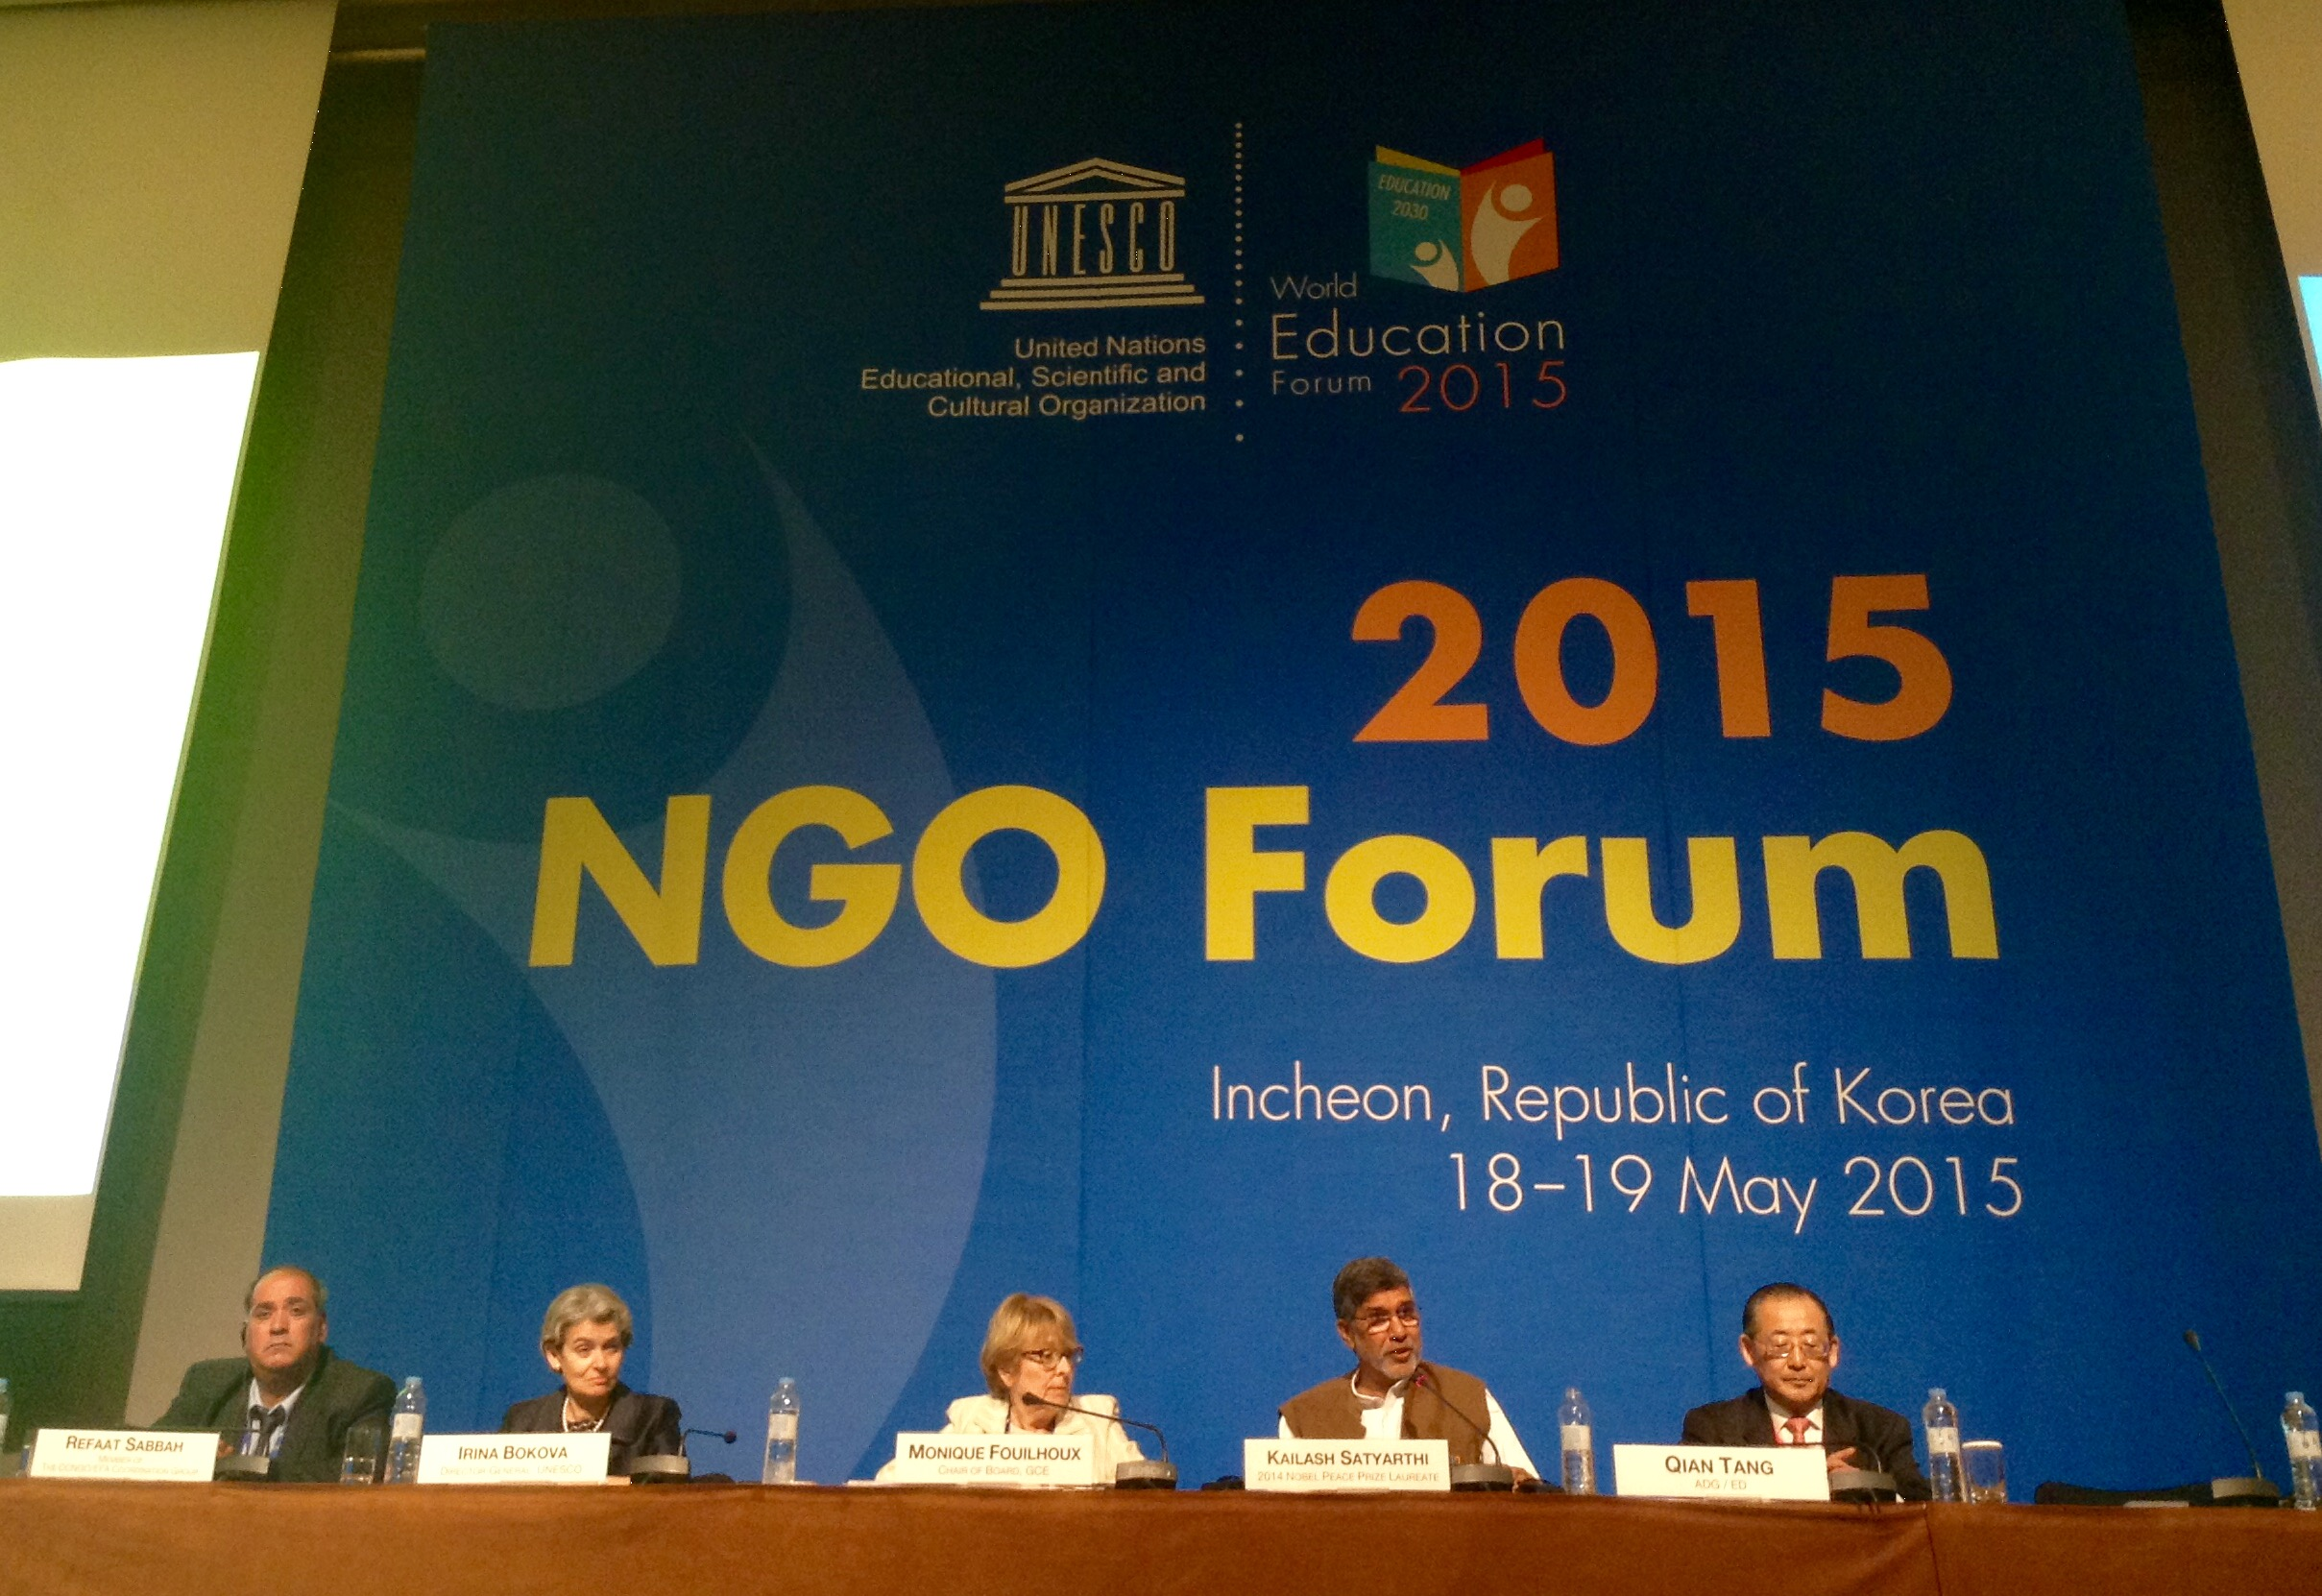 NGO world education forum 2015